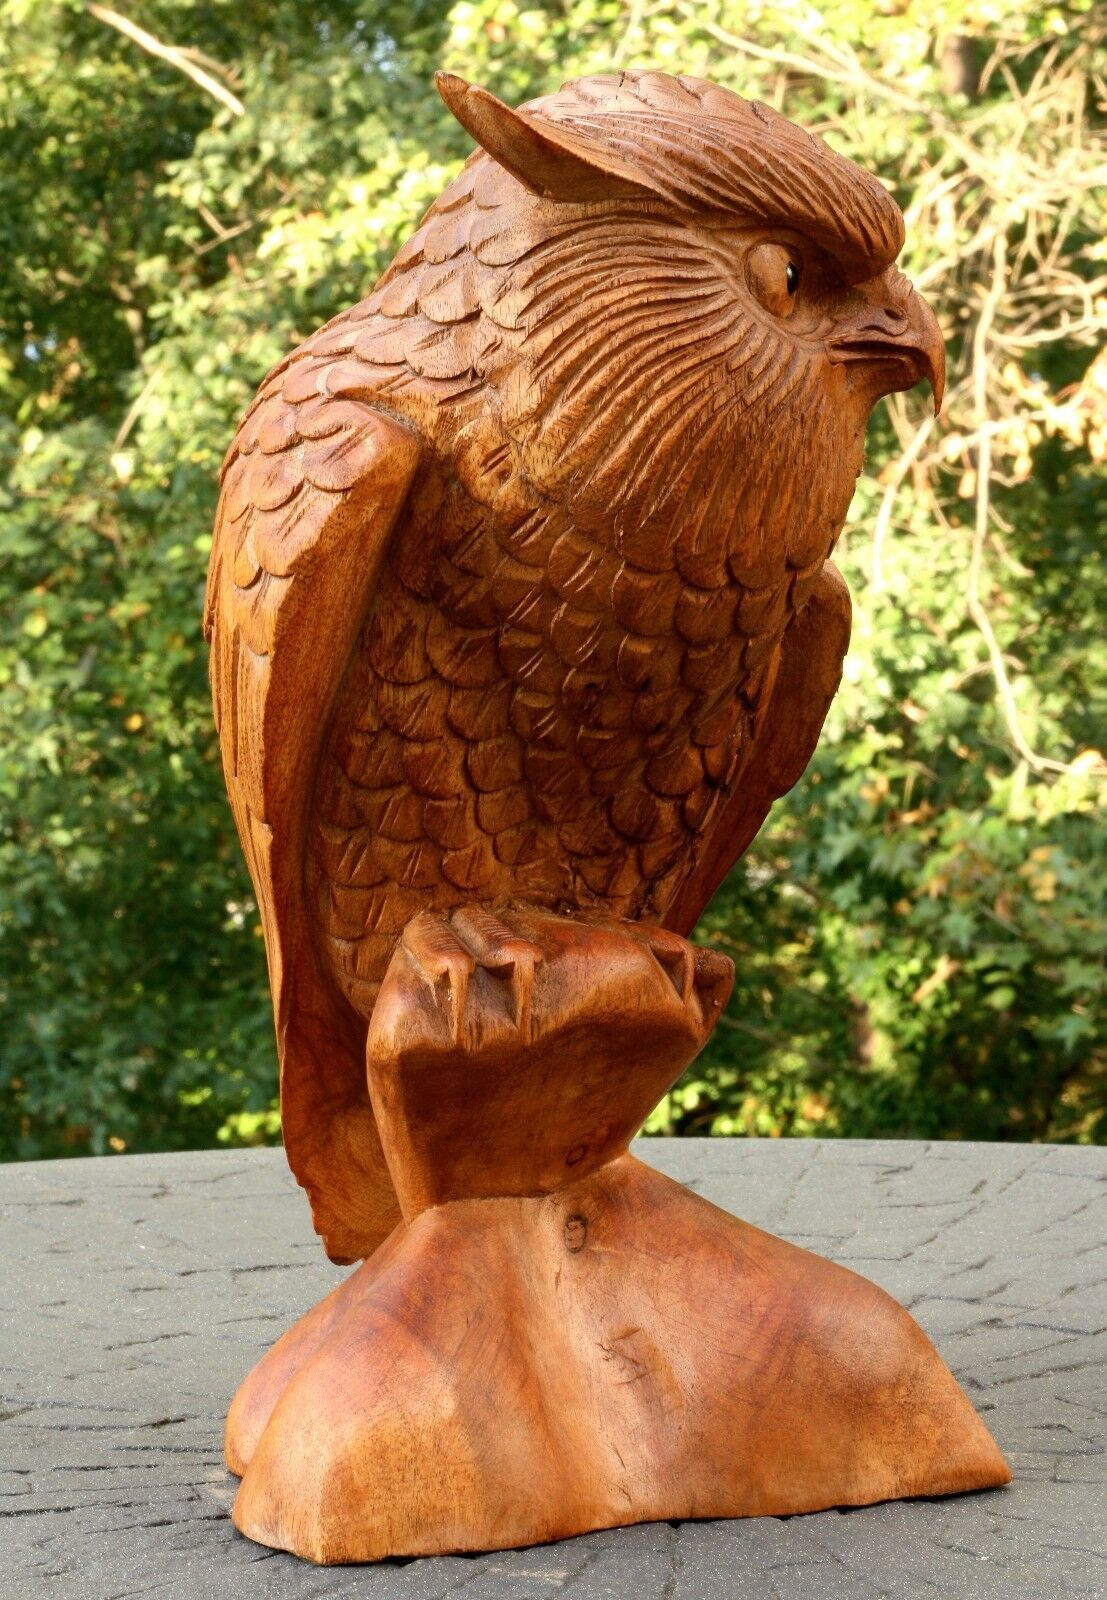 """12"""" Large Wooden Owl Statue Hand Carved Sculpture Figurine Art Home Decor Gift image 3"""